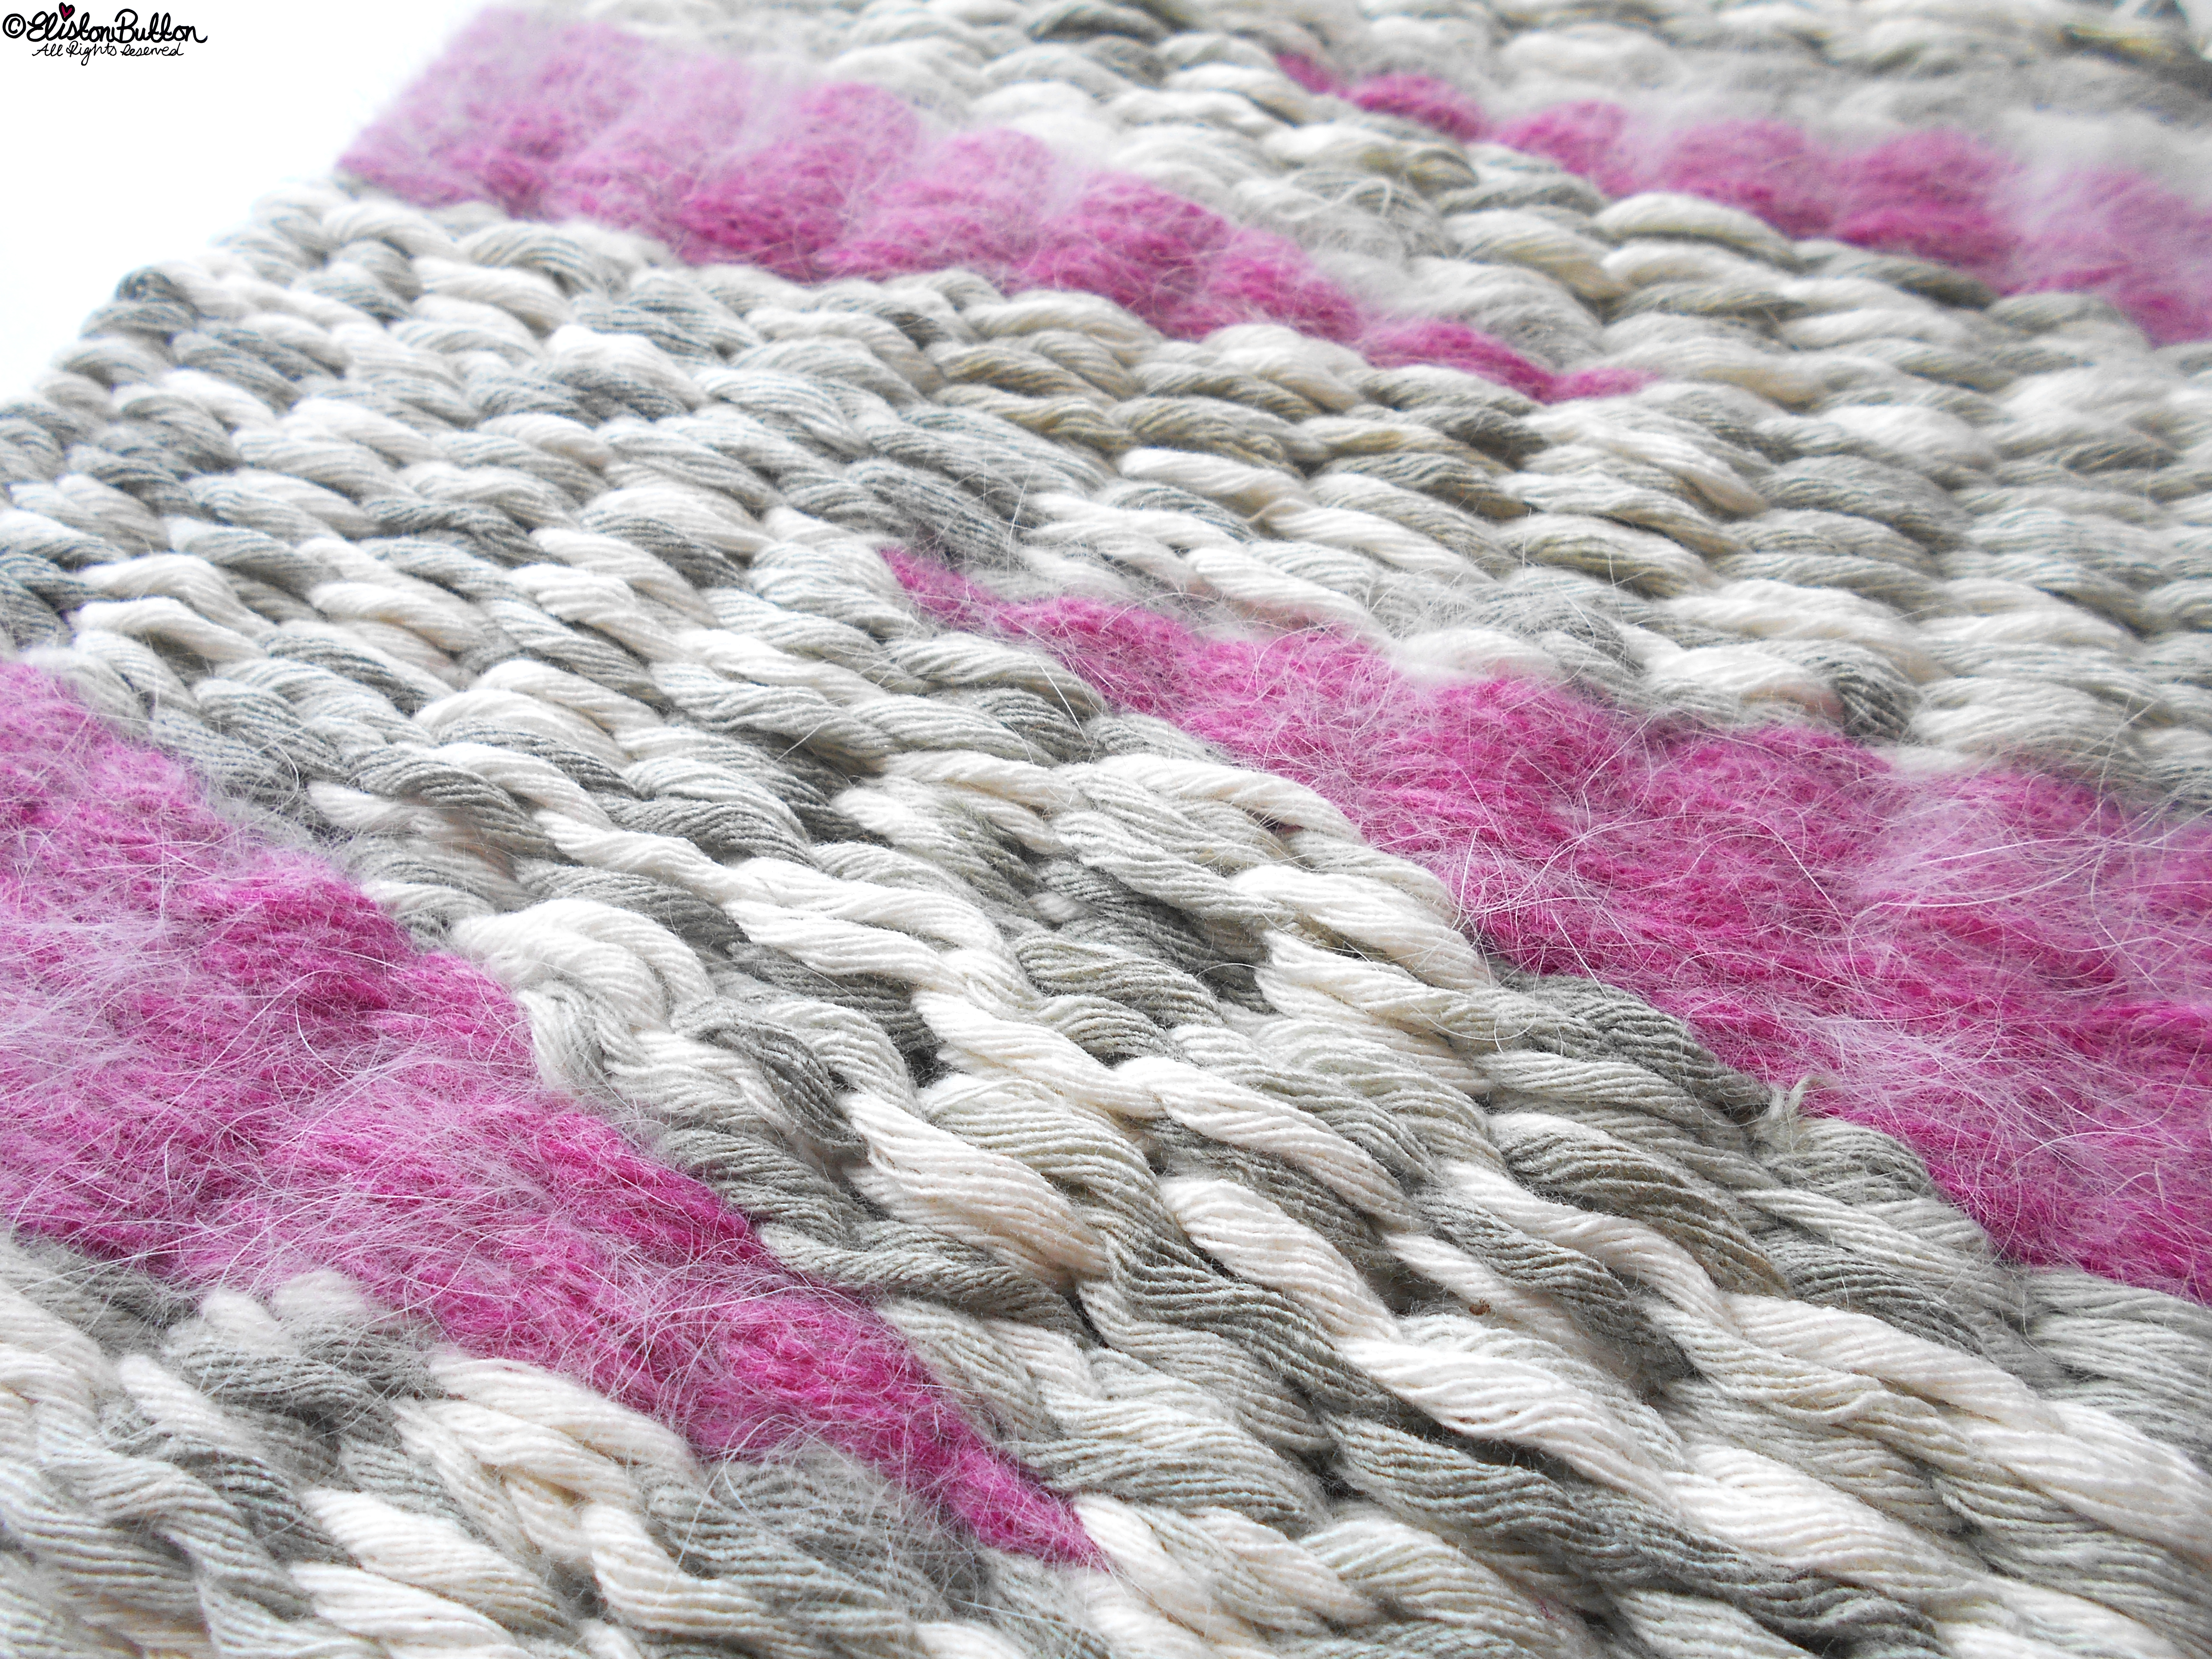 Pale Grey and Pink Weaving - Workspace Wednesday - Weave It To Me...at www.elistonbutton.com - Eliston Button - That Crafty Kid – Art, Design, Craft & Adventure.